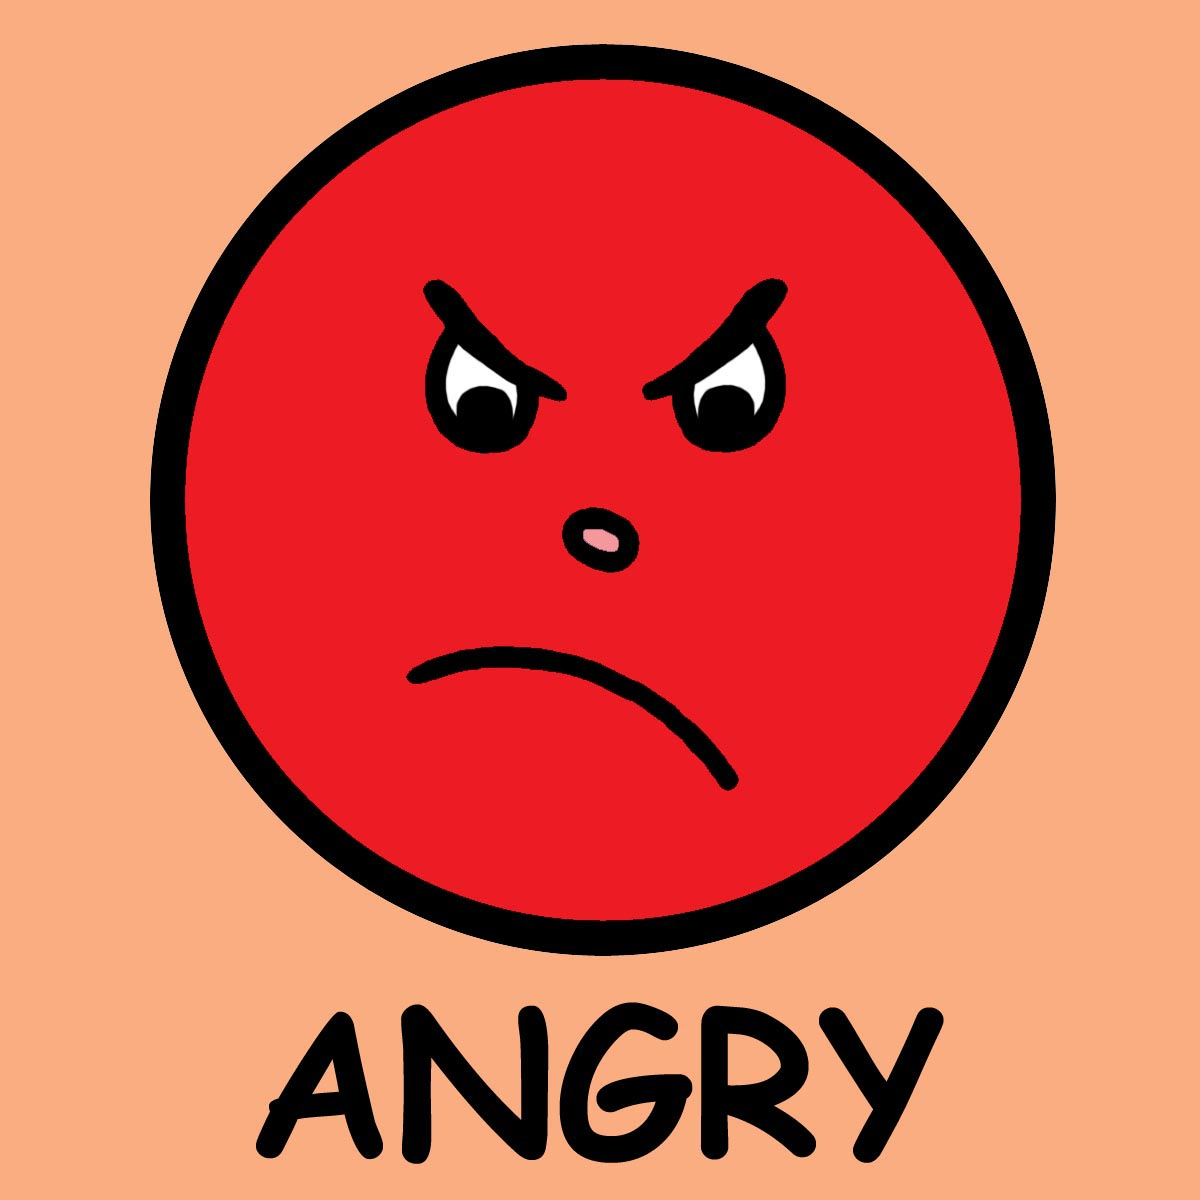 Angry-face.jpg